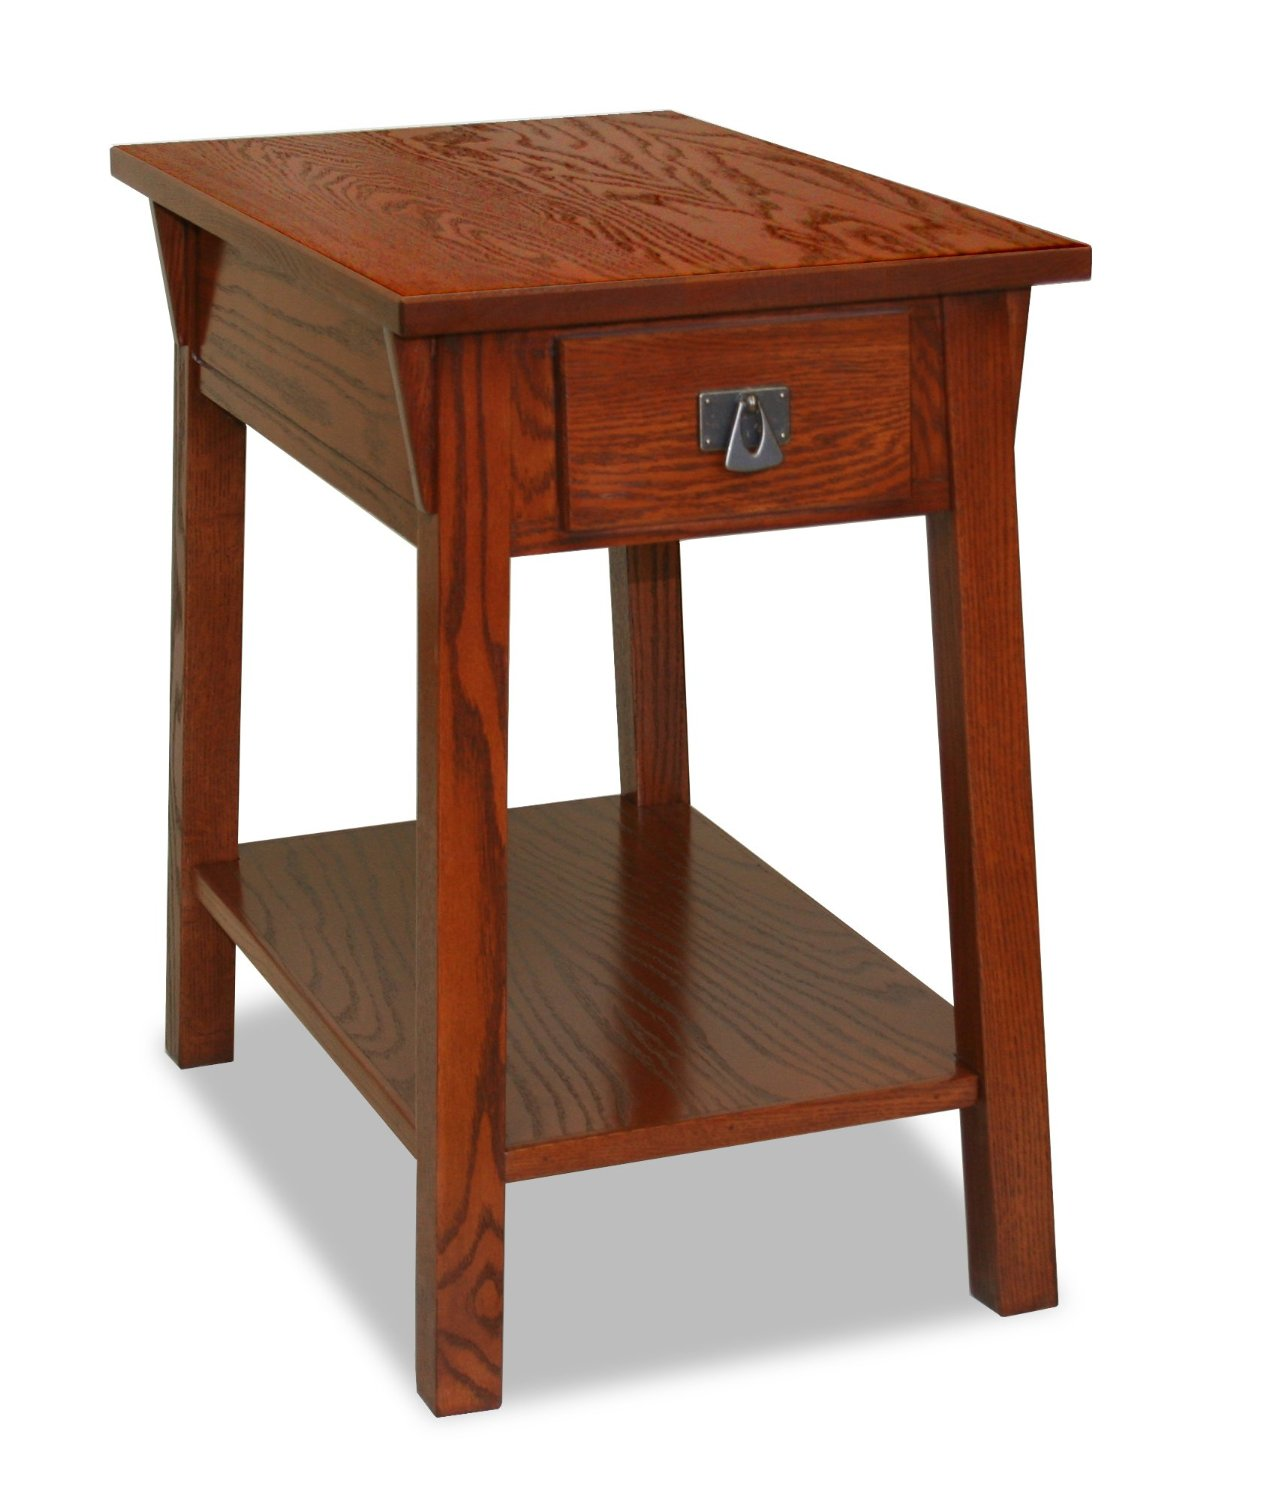 Wooden End Table Perfect Small End Table With Drawer Homesfeed